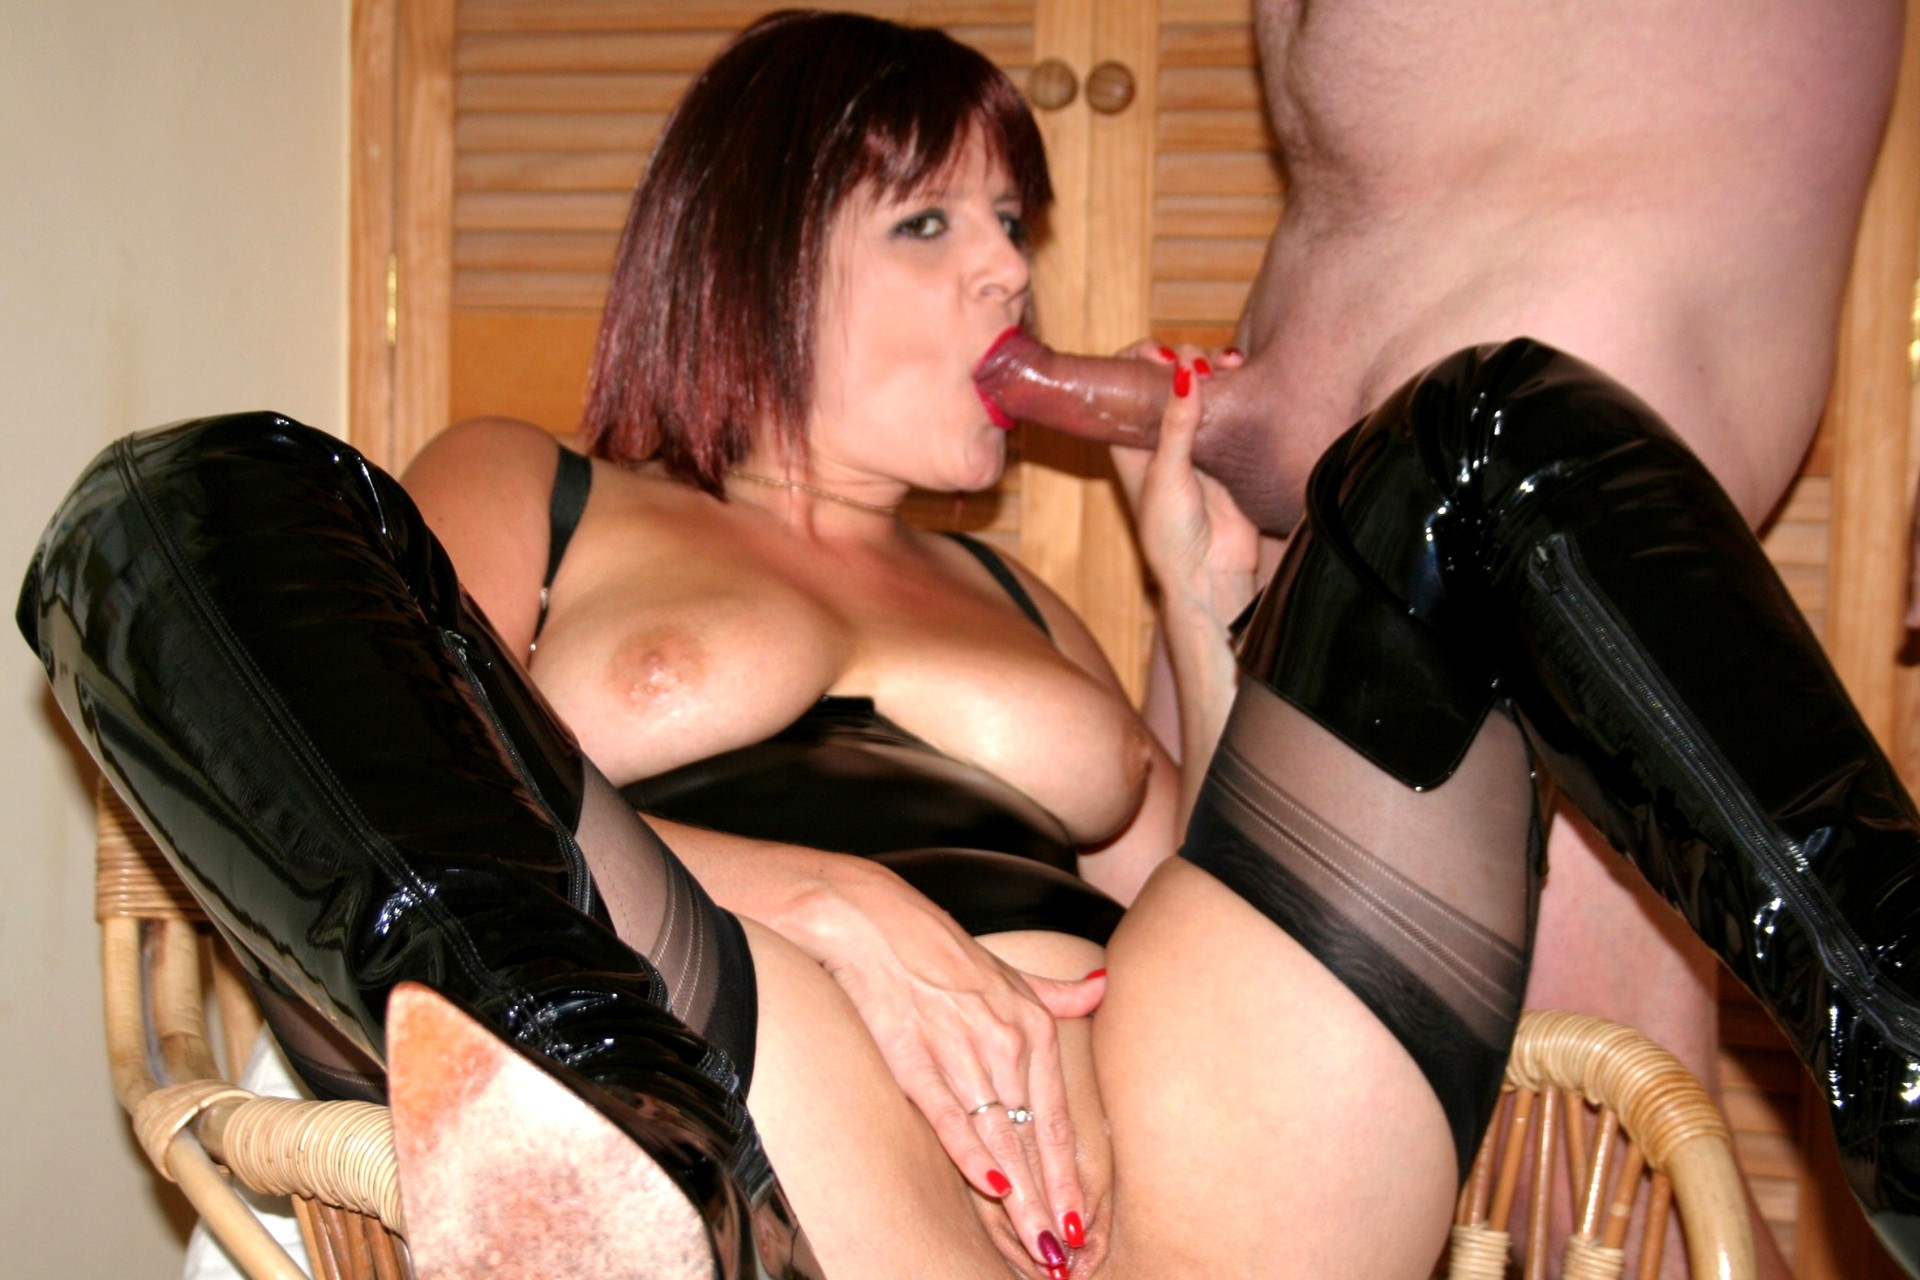 milf sex with kinky boots